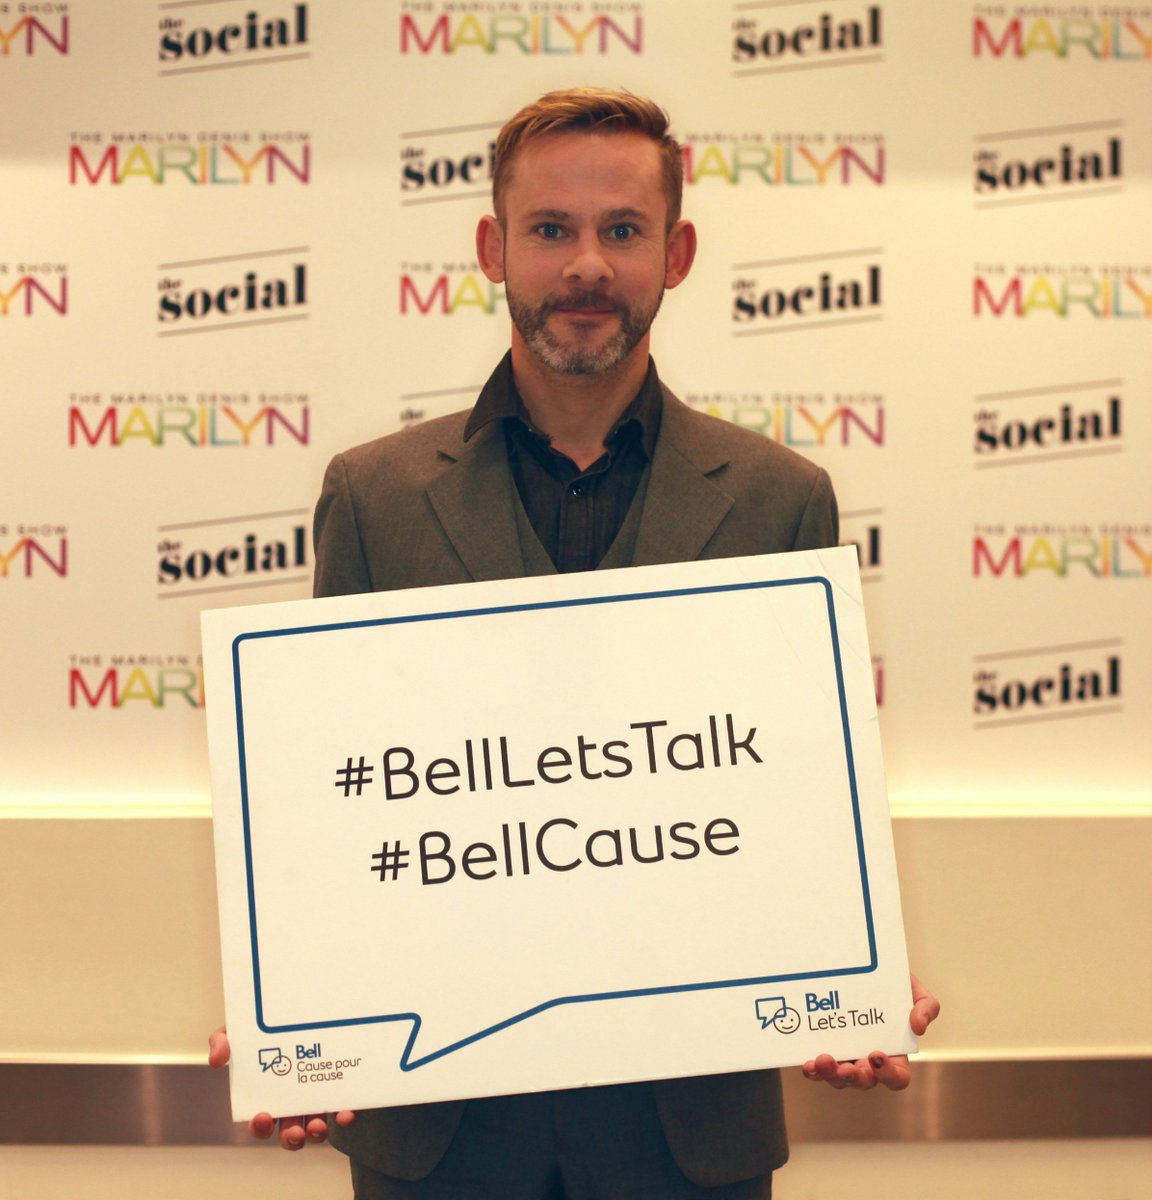 #BellLetsTalk Day is here! Spread the word and let's end the stigma around mental illness. @DomsWildThings https://t.co/gXWZnB6S3e